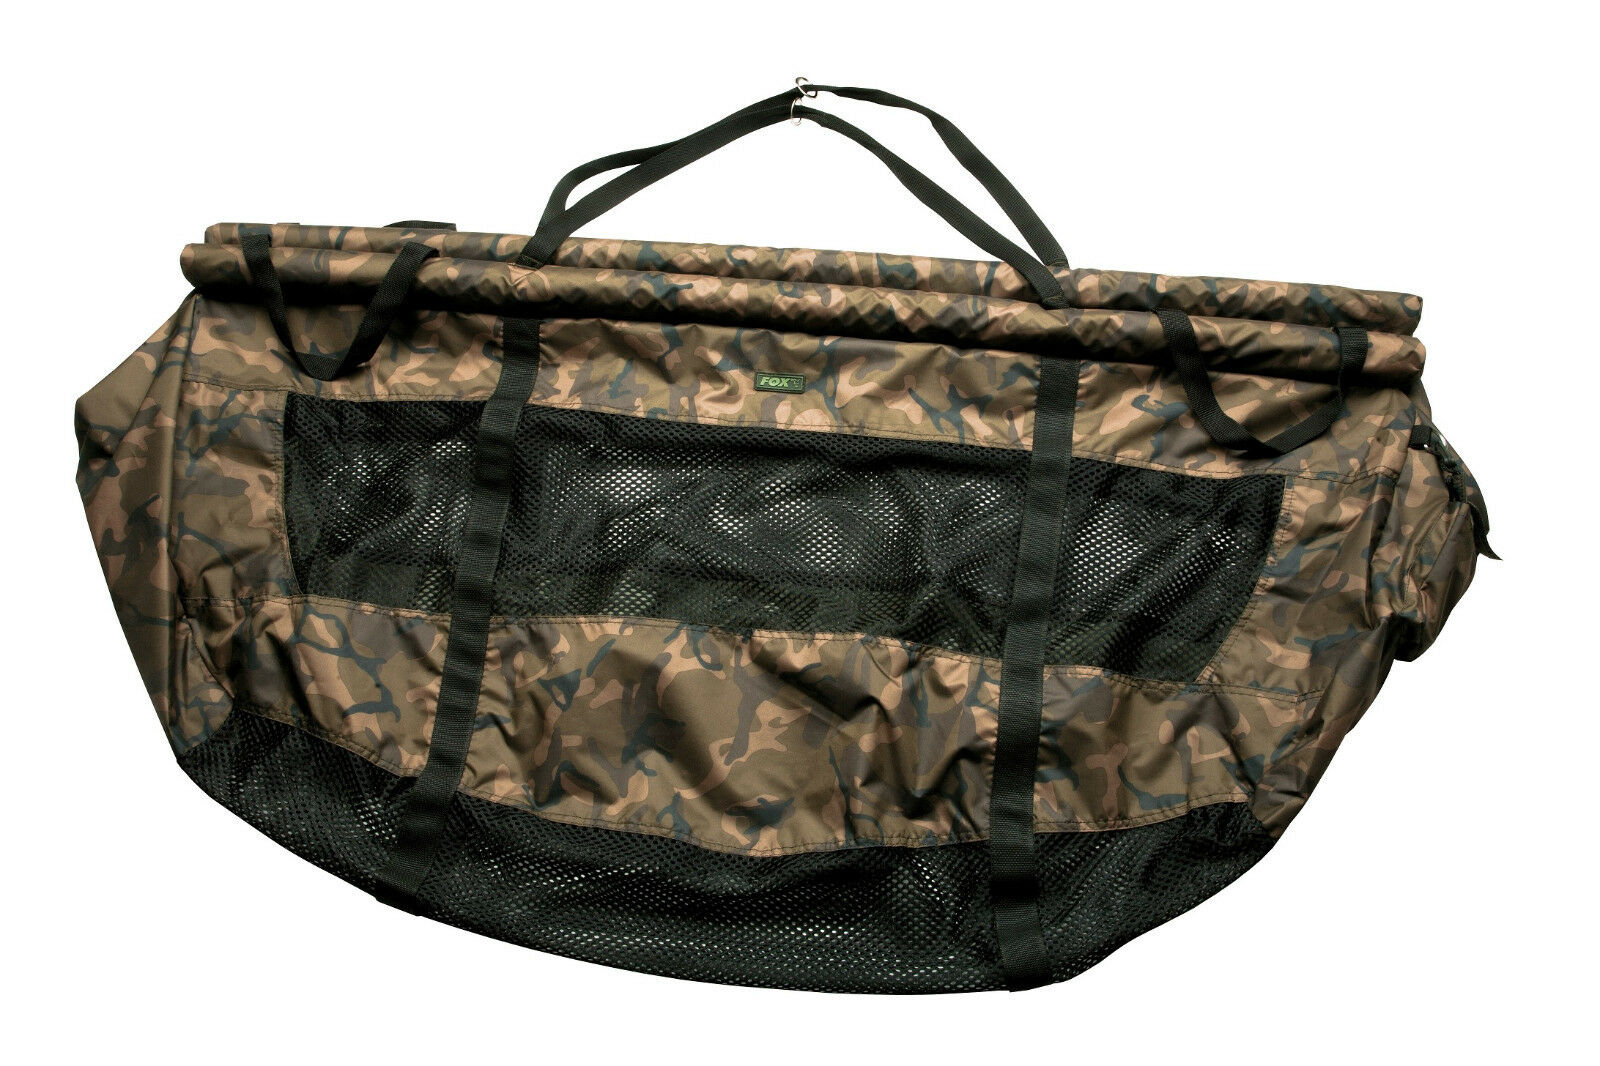 Fox STR Camo Flotation Weigh Sling CCC035 Wiegeschlinge Weightsling Weighsling